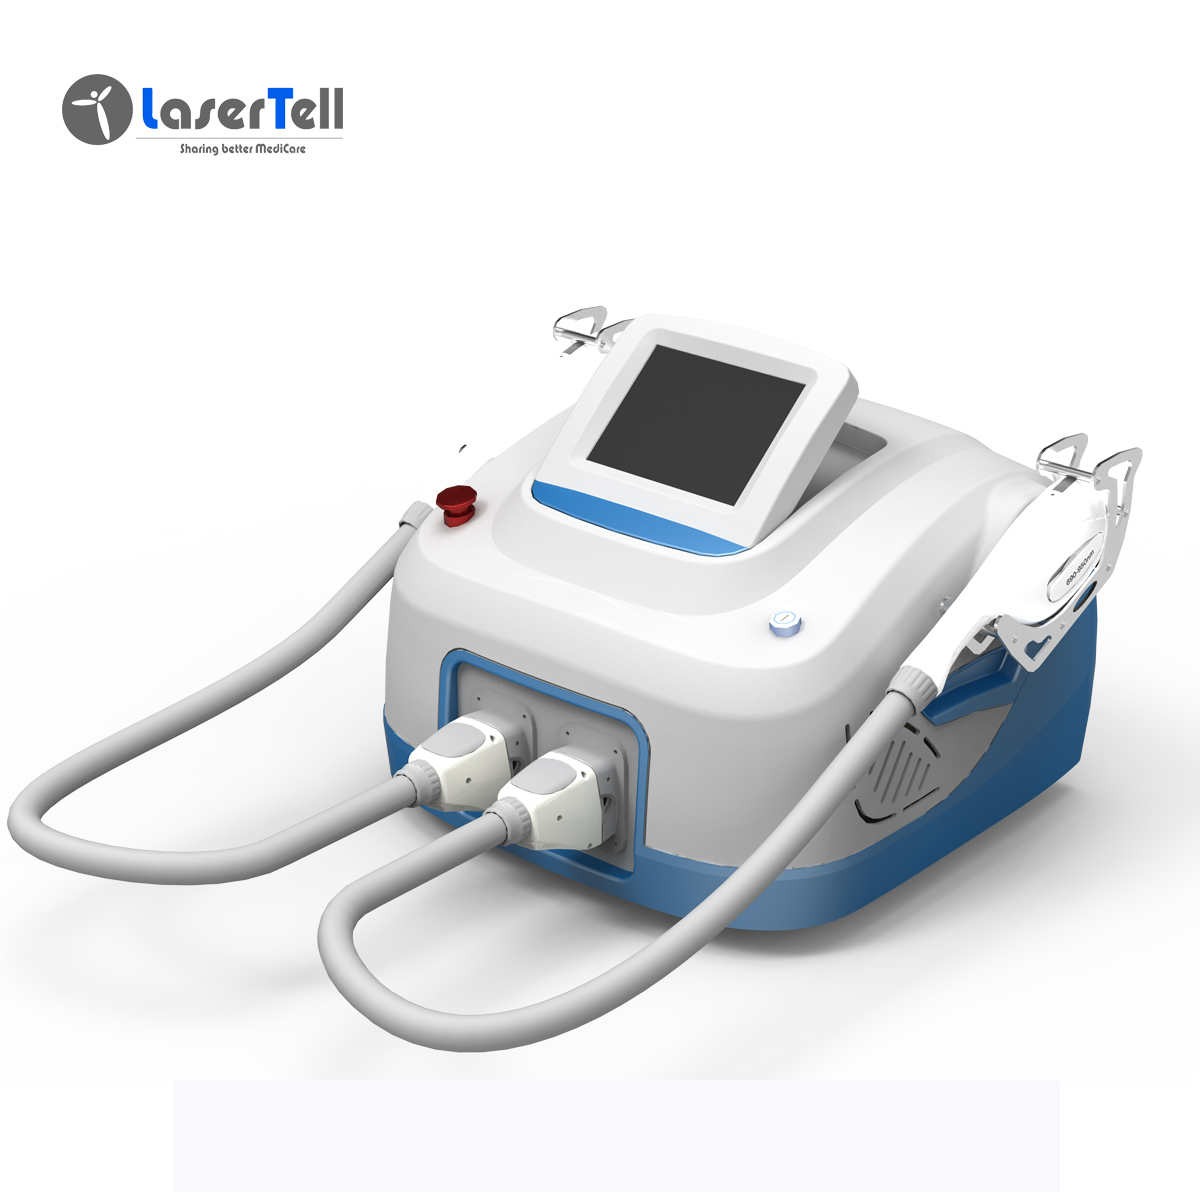 Portable new technology product hair removal IPL+RF Skin Rejuvenation two handpieces ipl+rf China sale